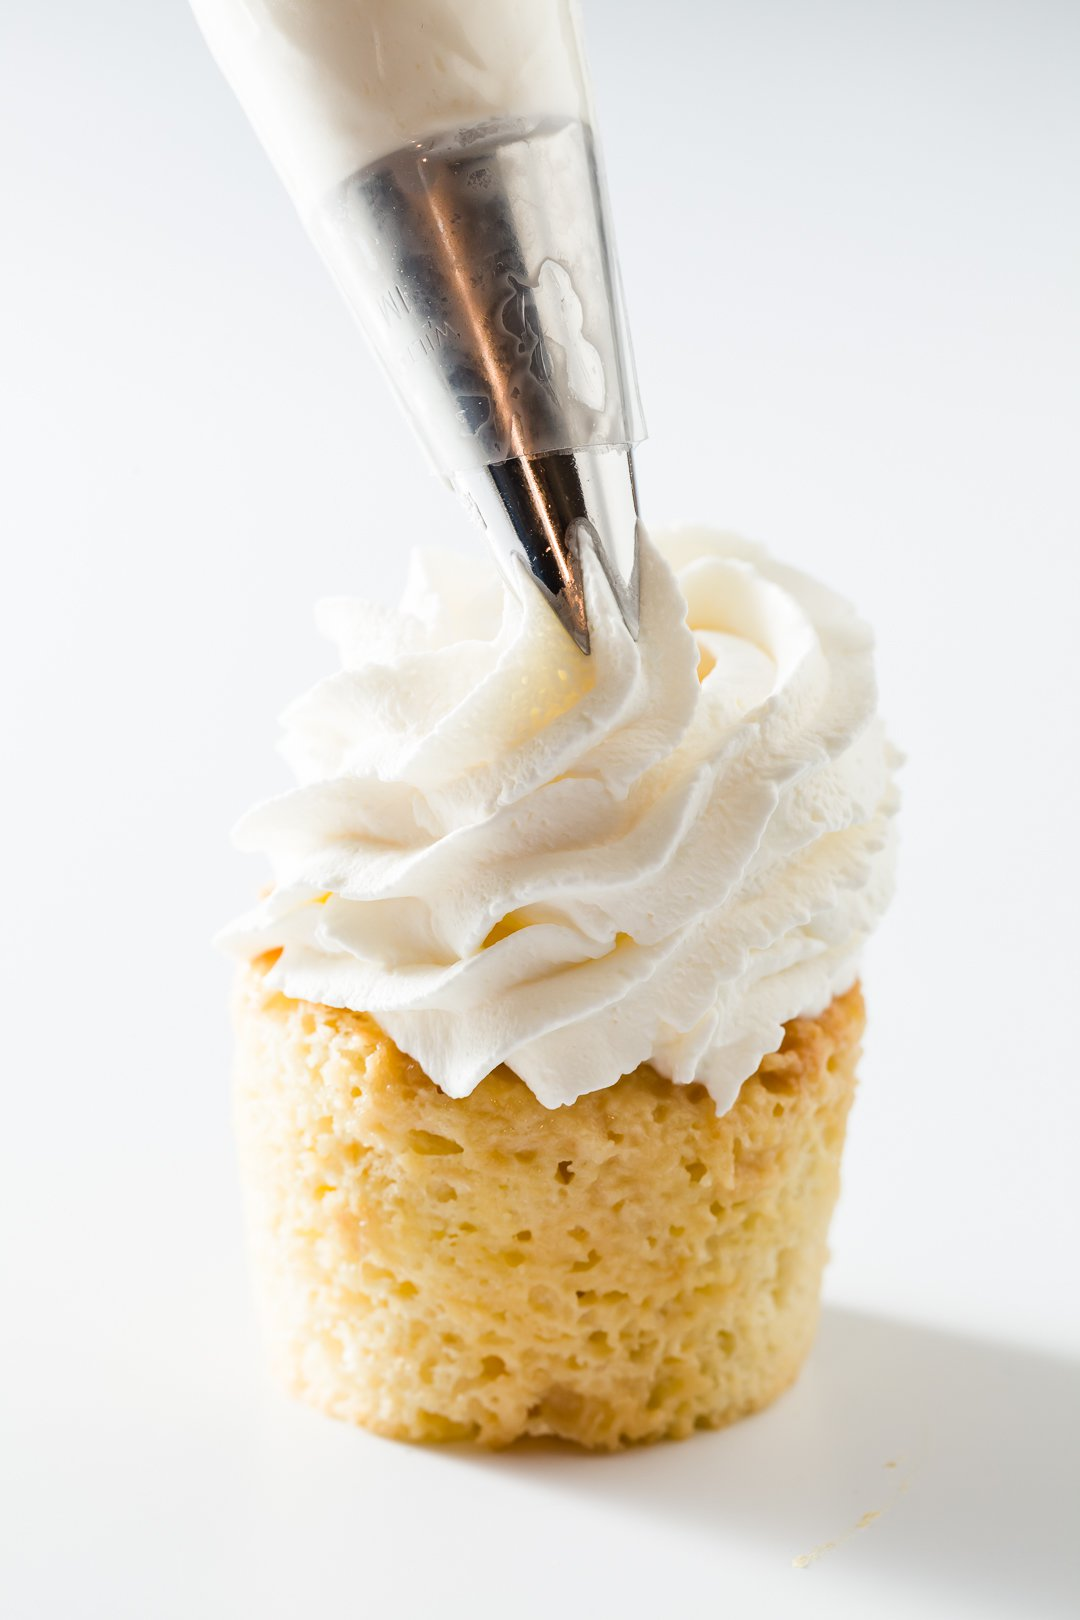 Topping tres leches cupcakes with whipped cream